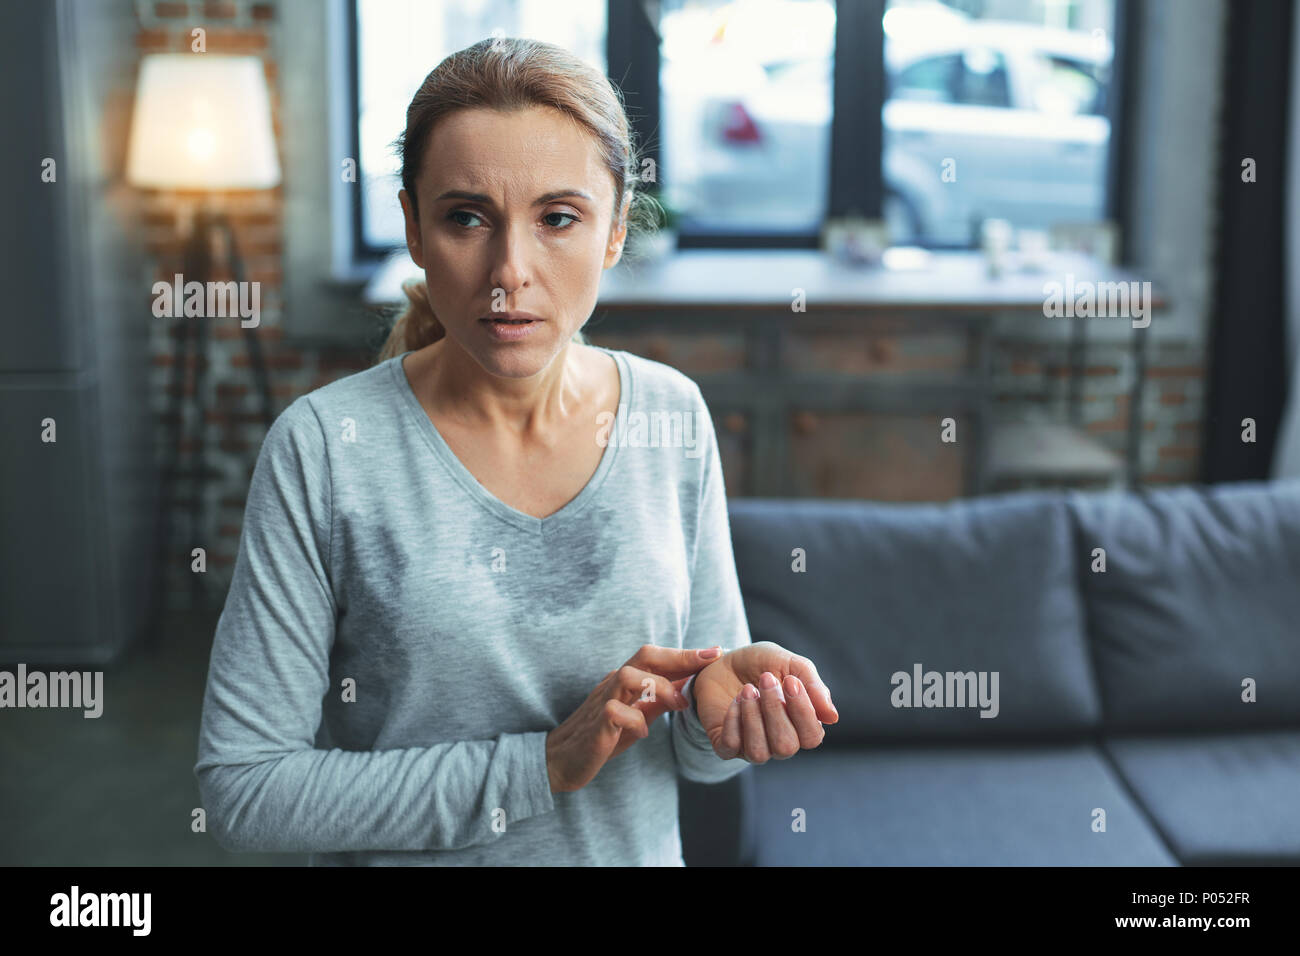 Thoughtful mature woman numbering heartbeat - Stock Image